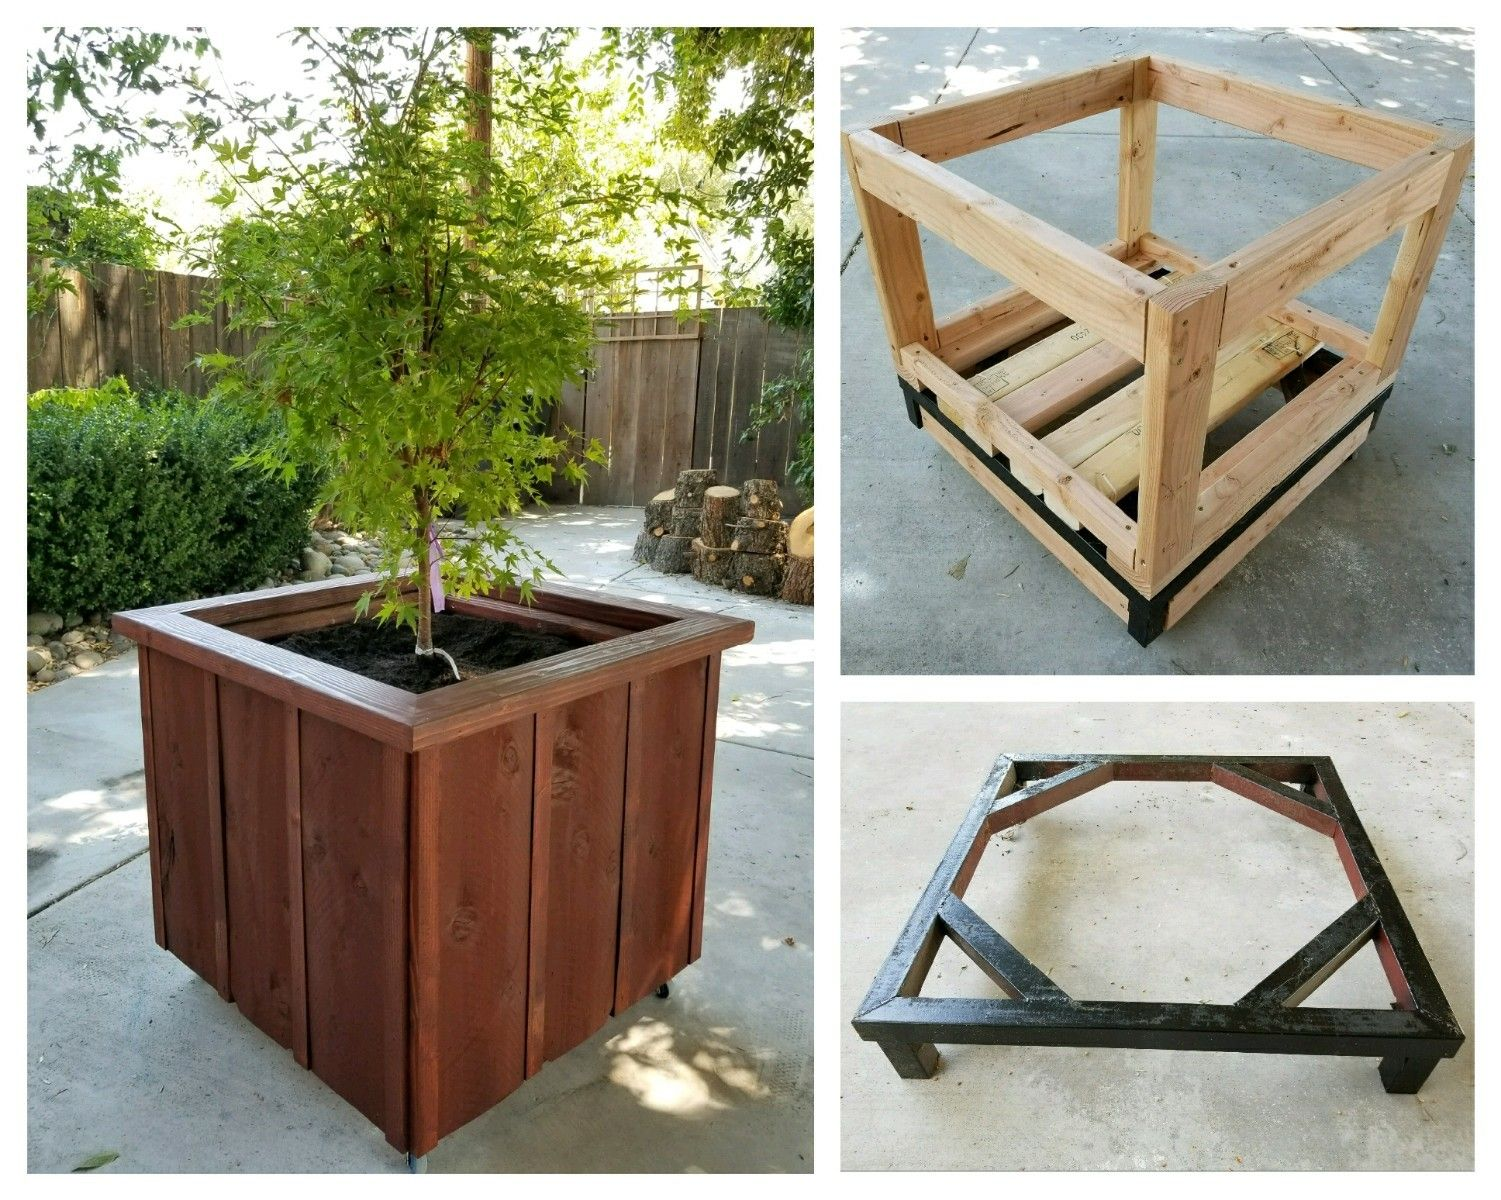 Diy Planter Box With Casters For Japanese Maple 27 Wx27 Lx30 H